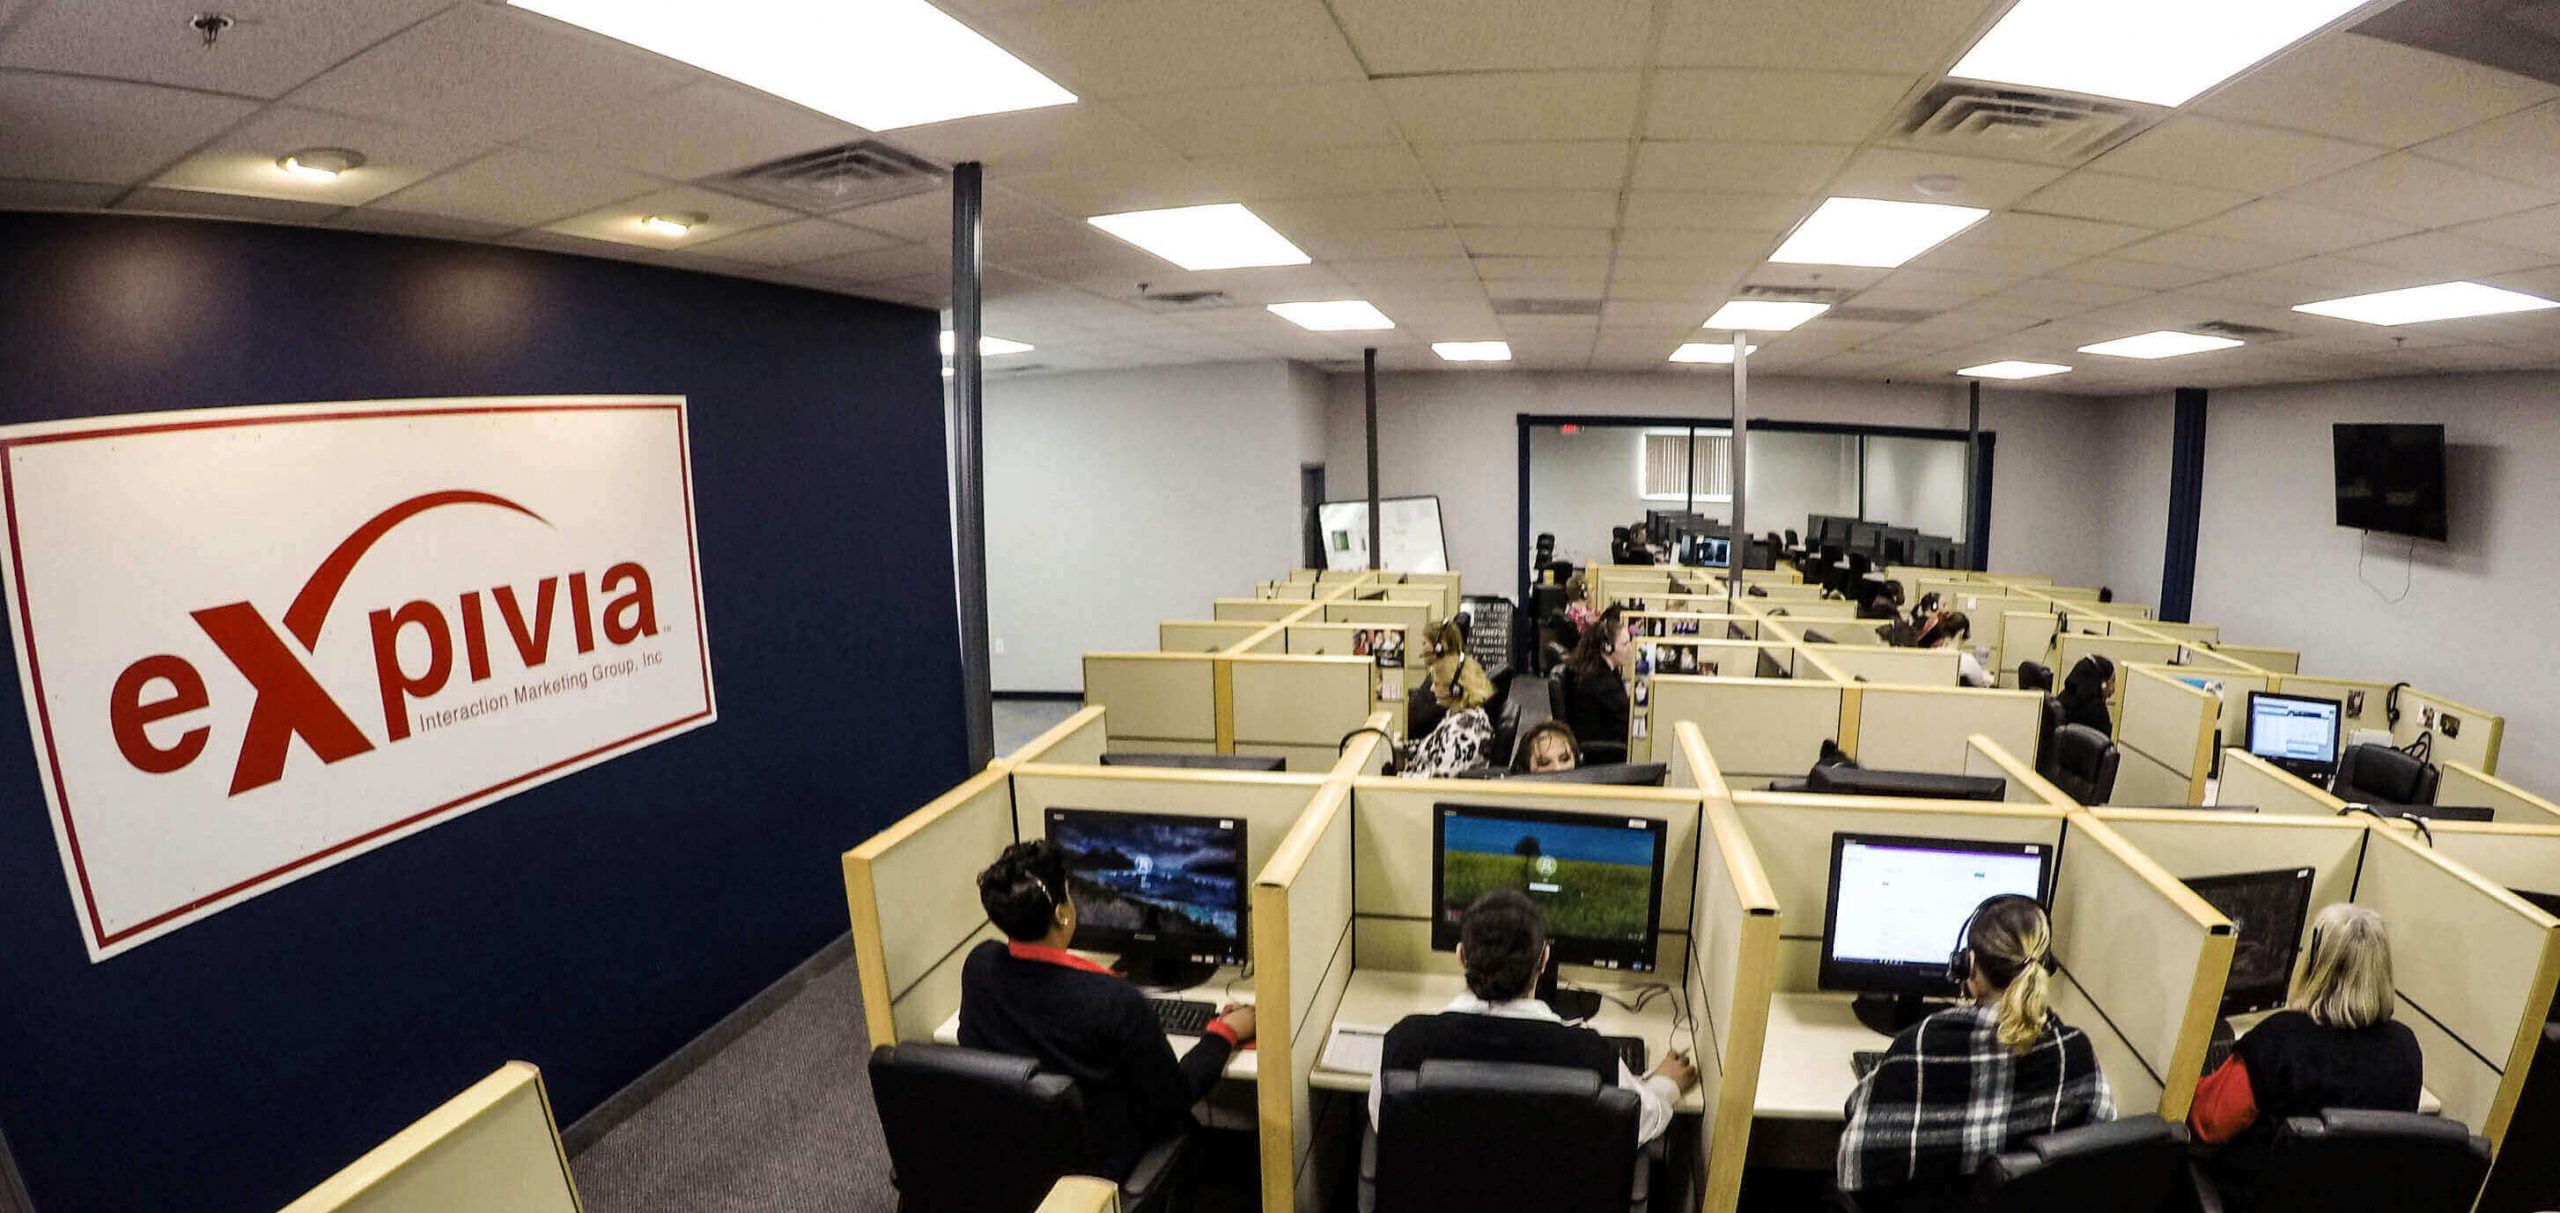 How the best call center sets up their call center floor.